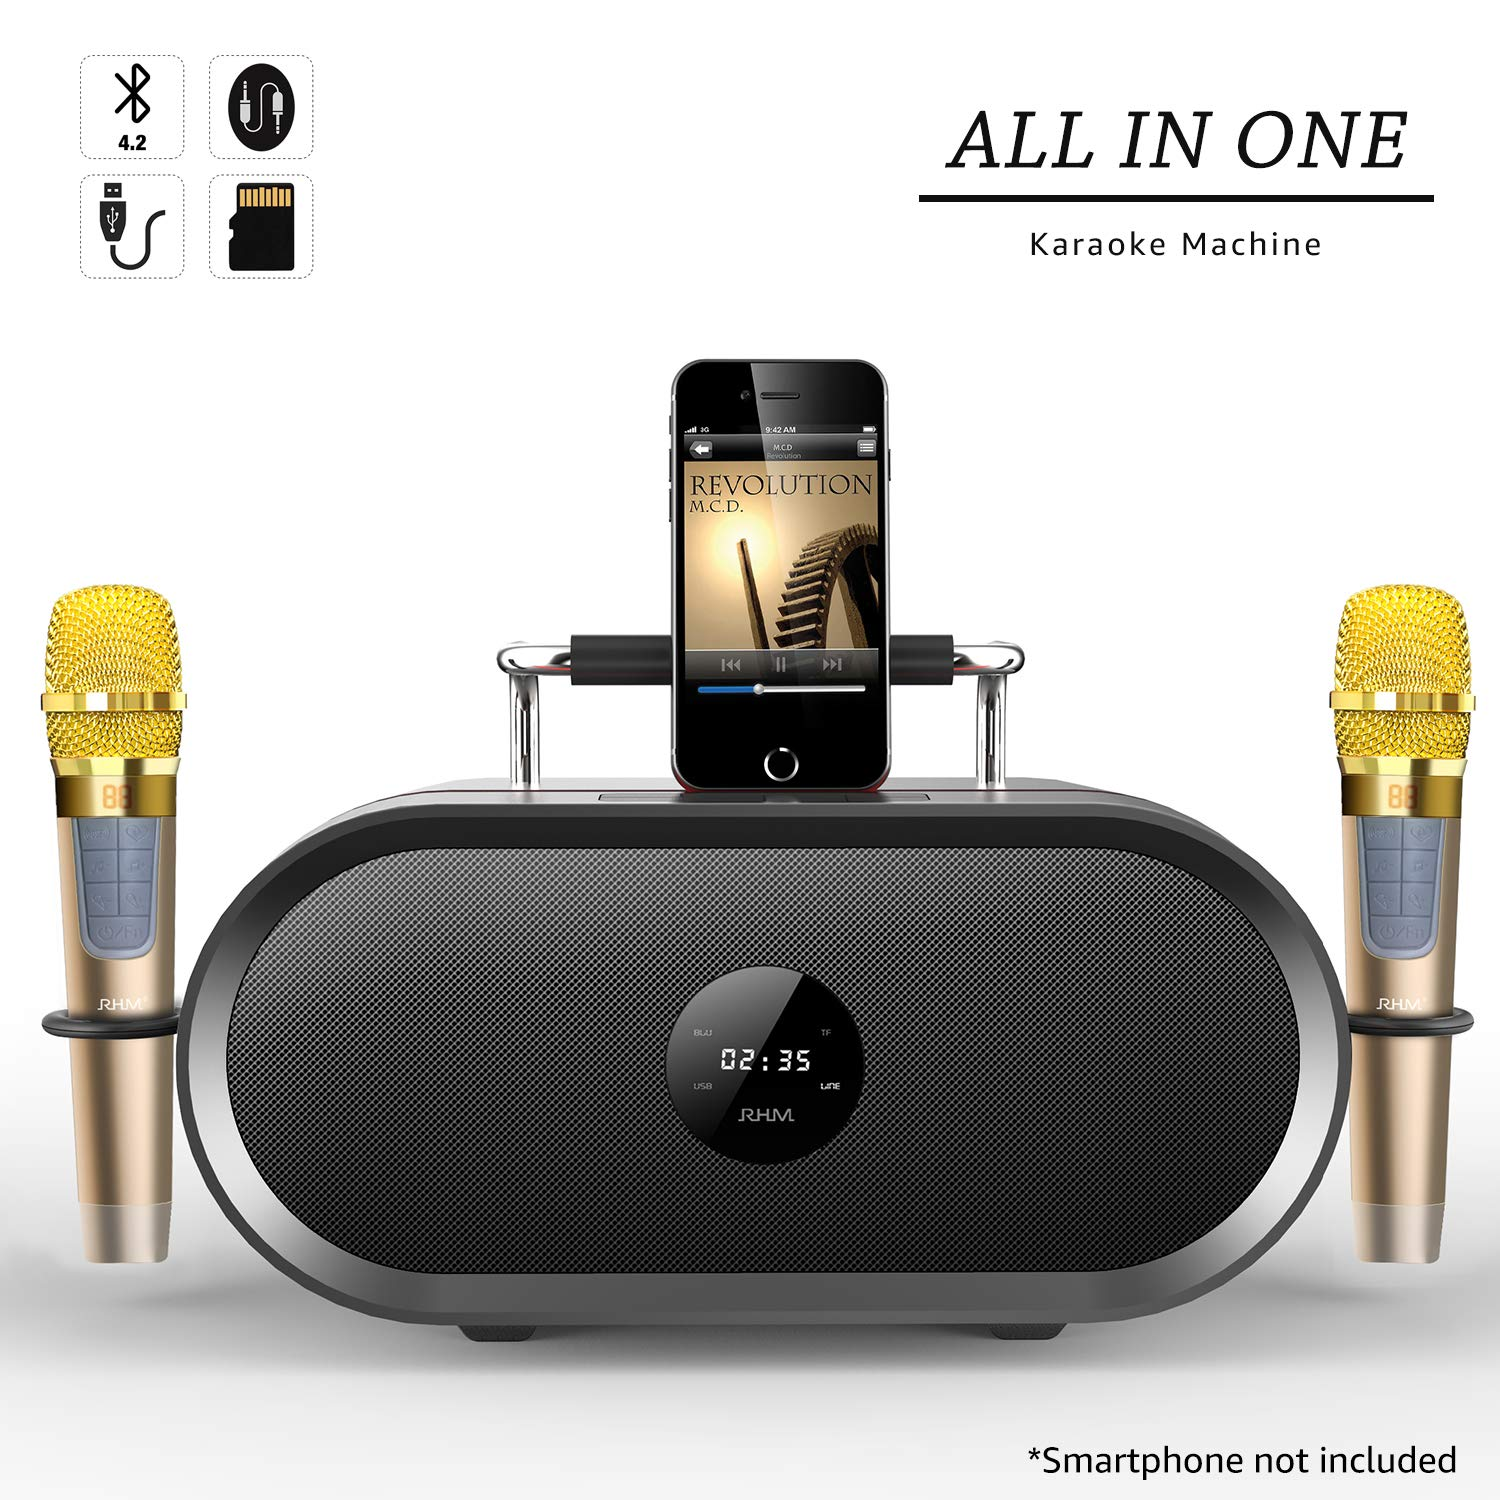 RHM Karaoke Machine for Kids&Adult,2 Wireless Microphones,Rechargeable Battery Speaker,Portable PA Speaker System with Bluetooth/AUX/USB/SD for Home,Party,Wedding,Picnic Outdoors&Indoors Activities by RHM (Image #1)